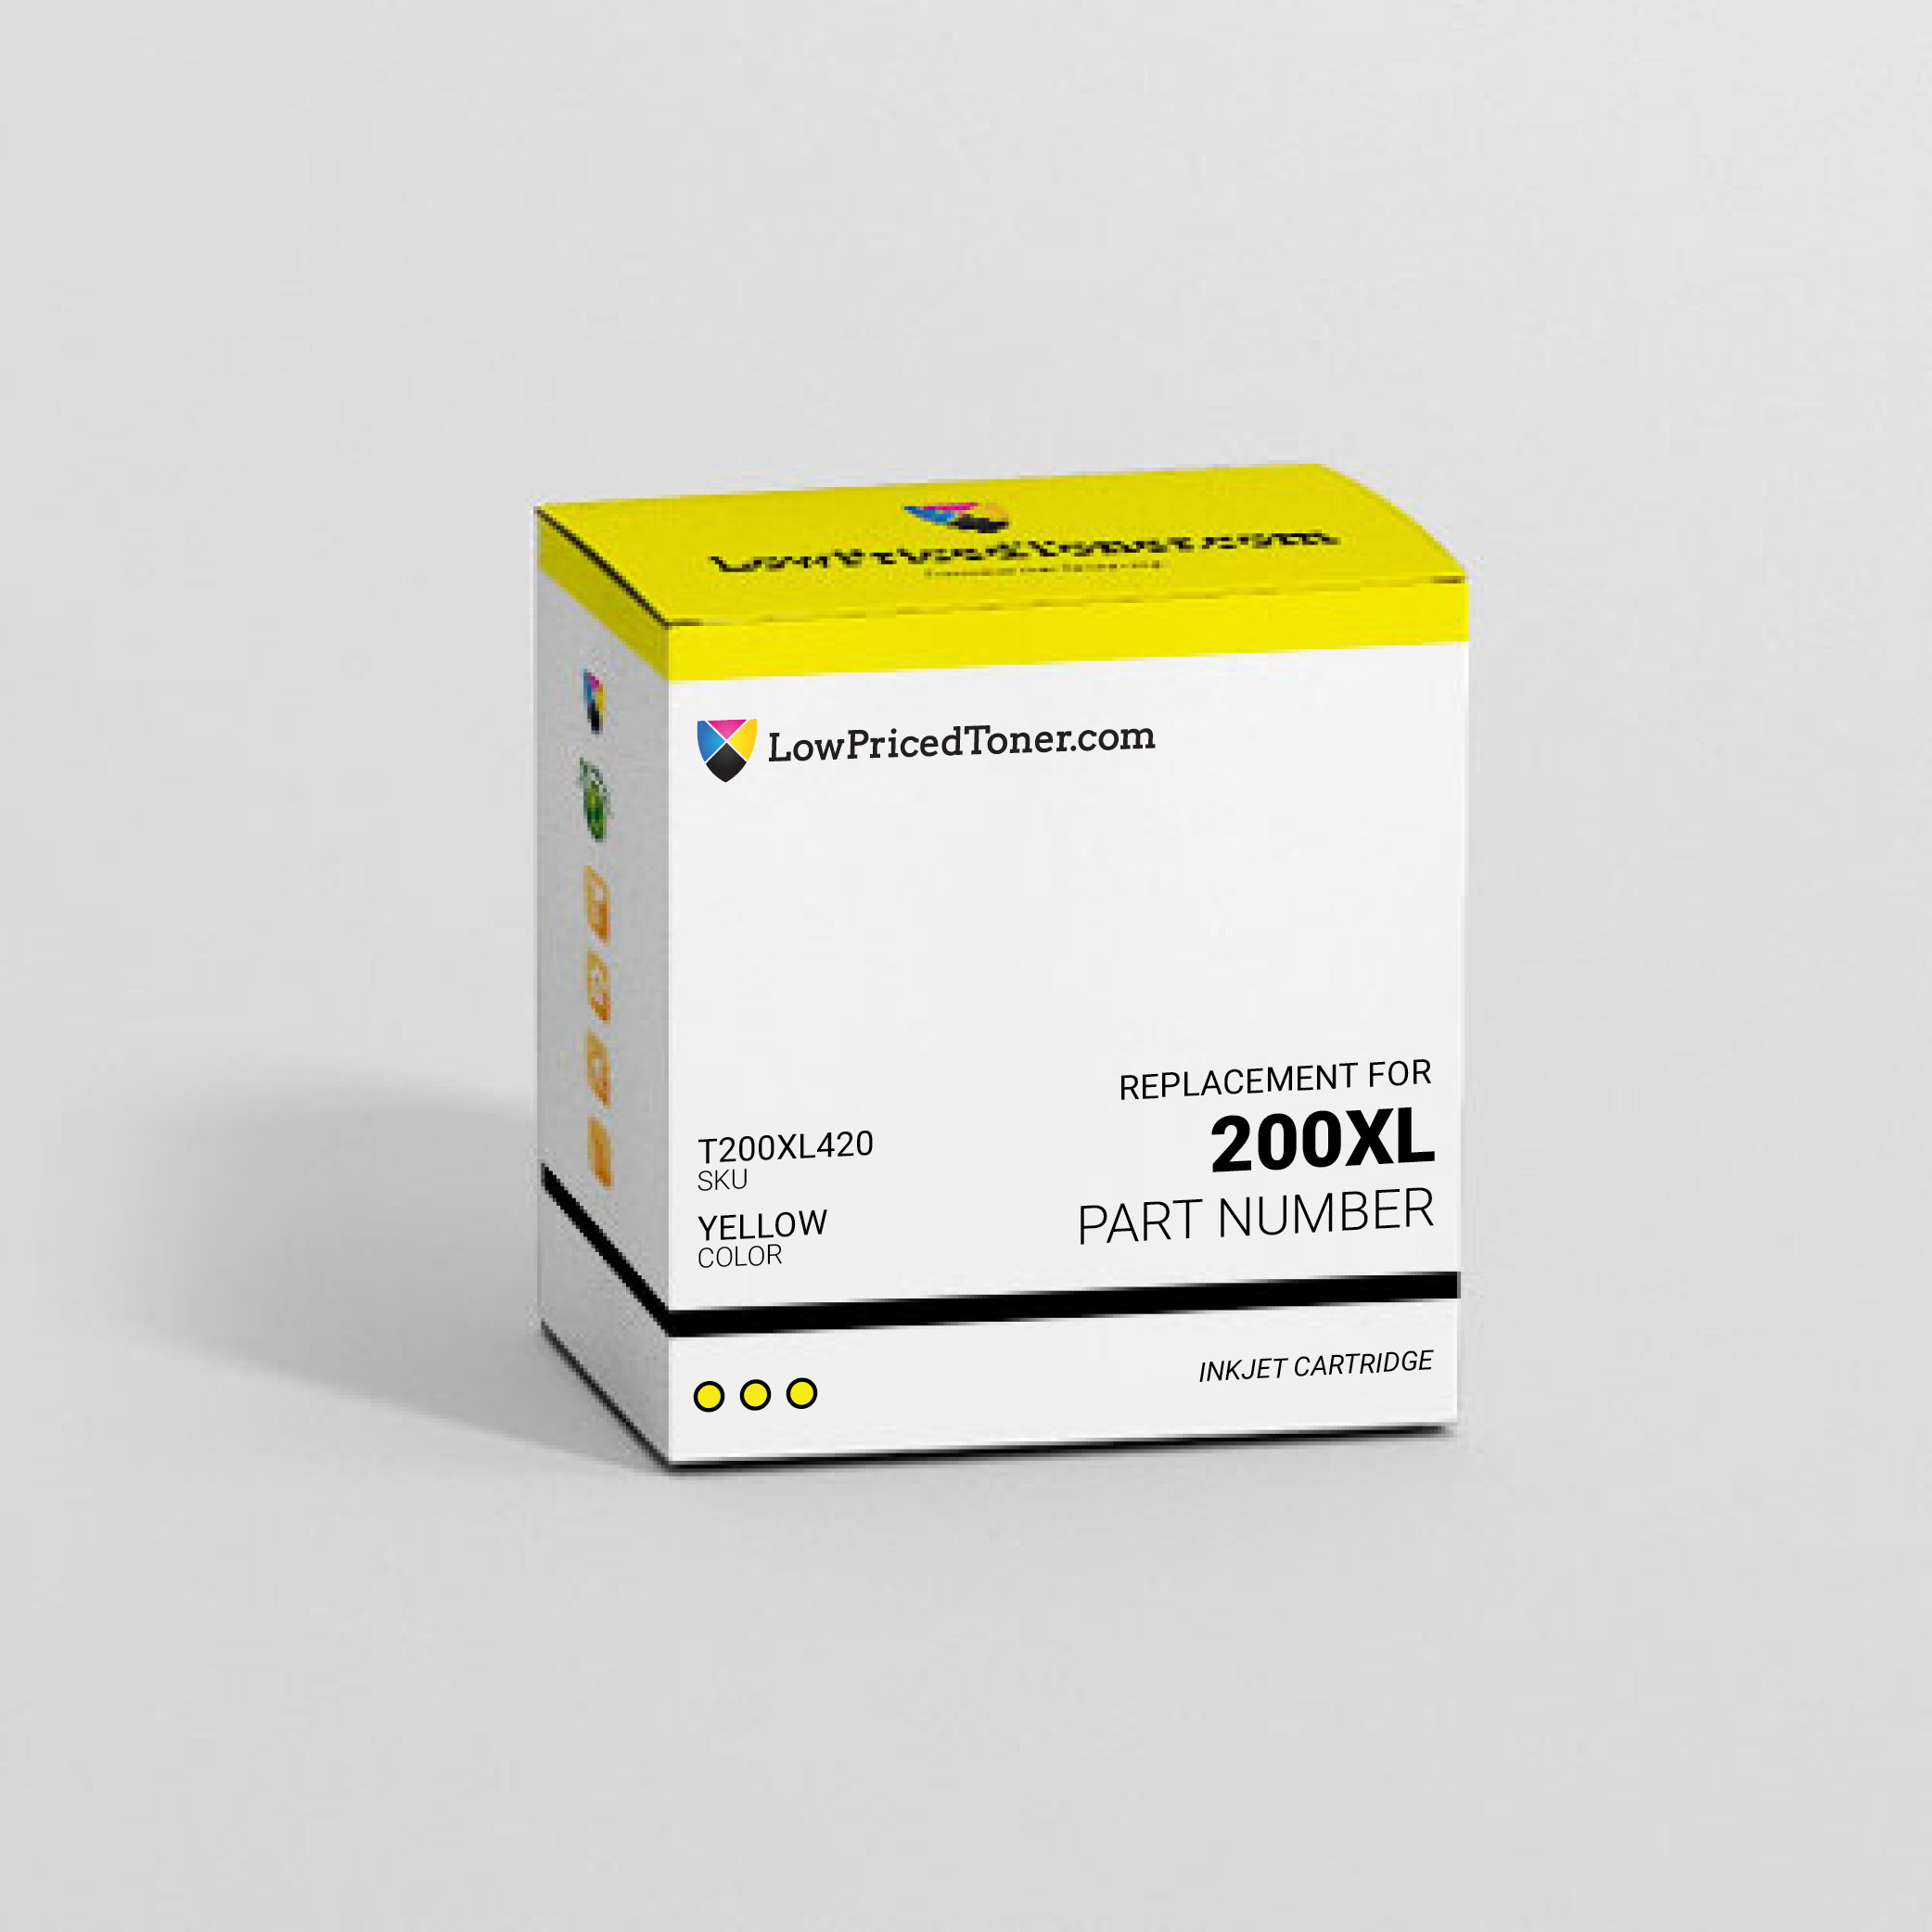 Epson T200XL420 200XL Remanufactured Yellow Ink Cartridge High Yield